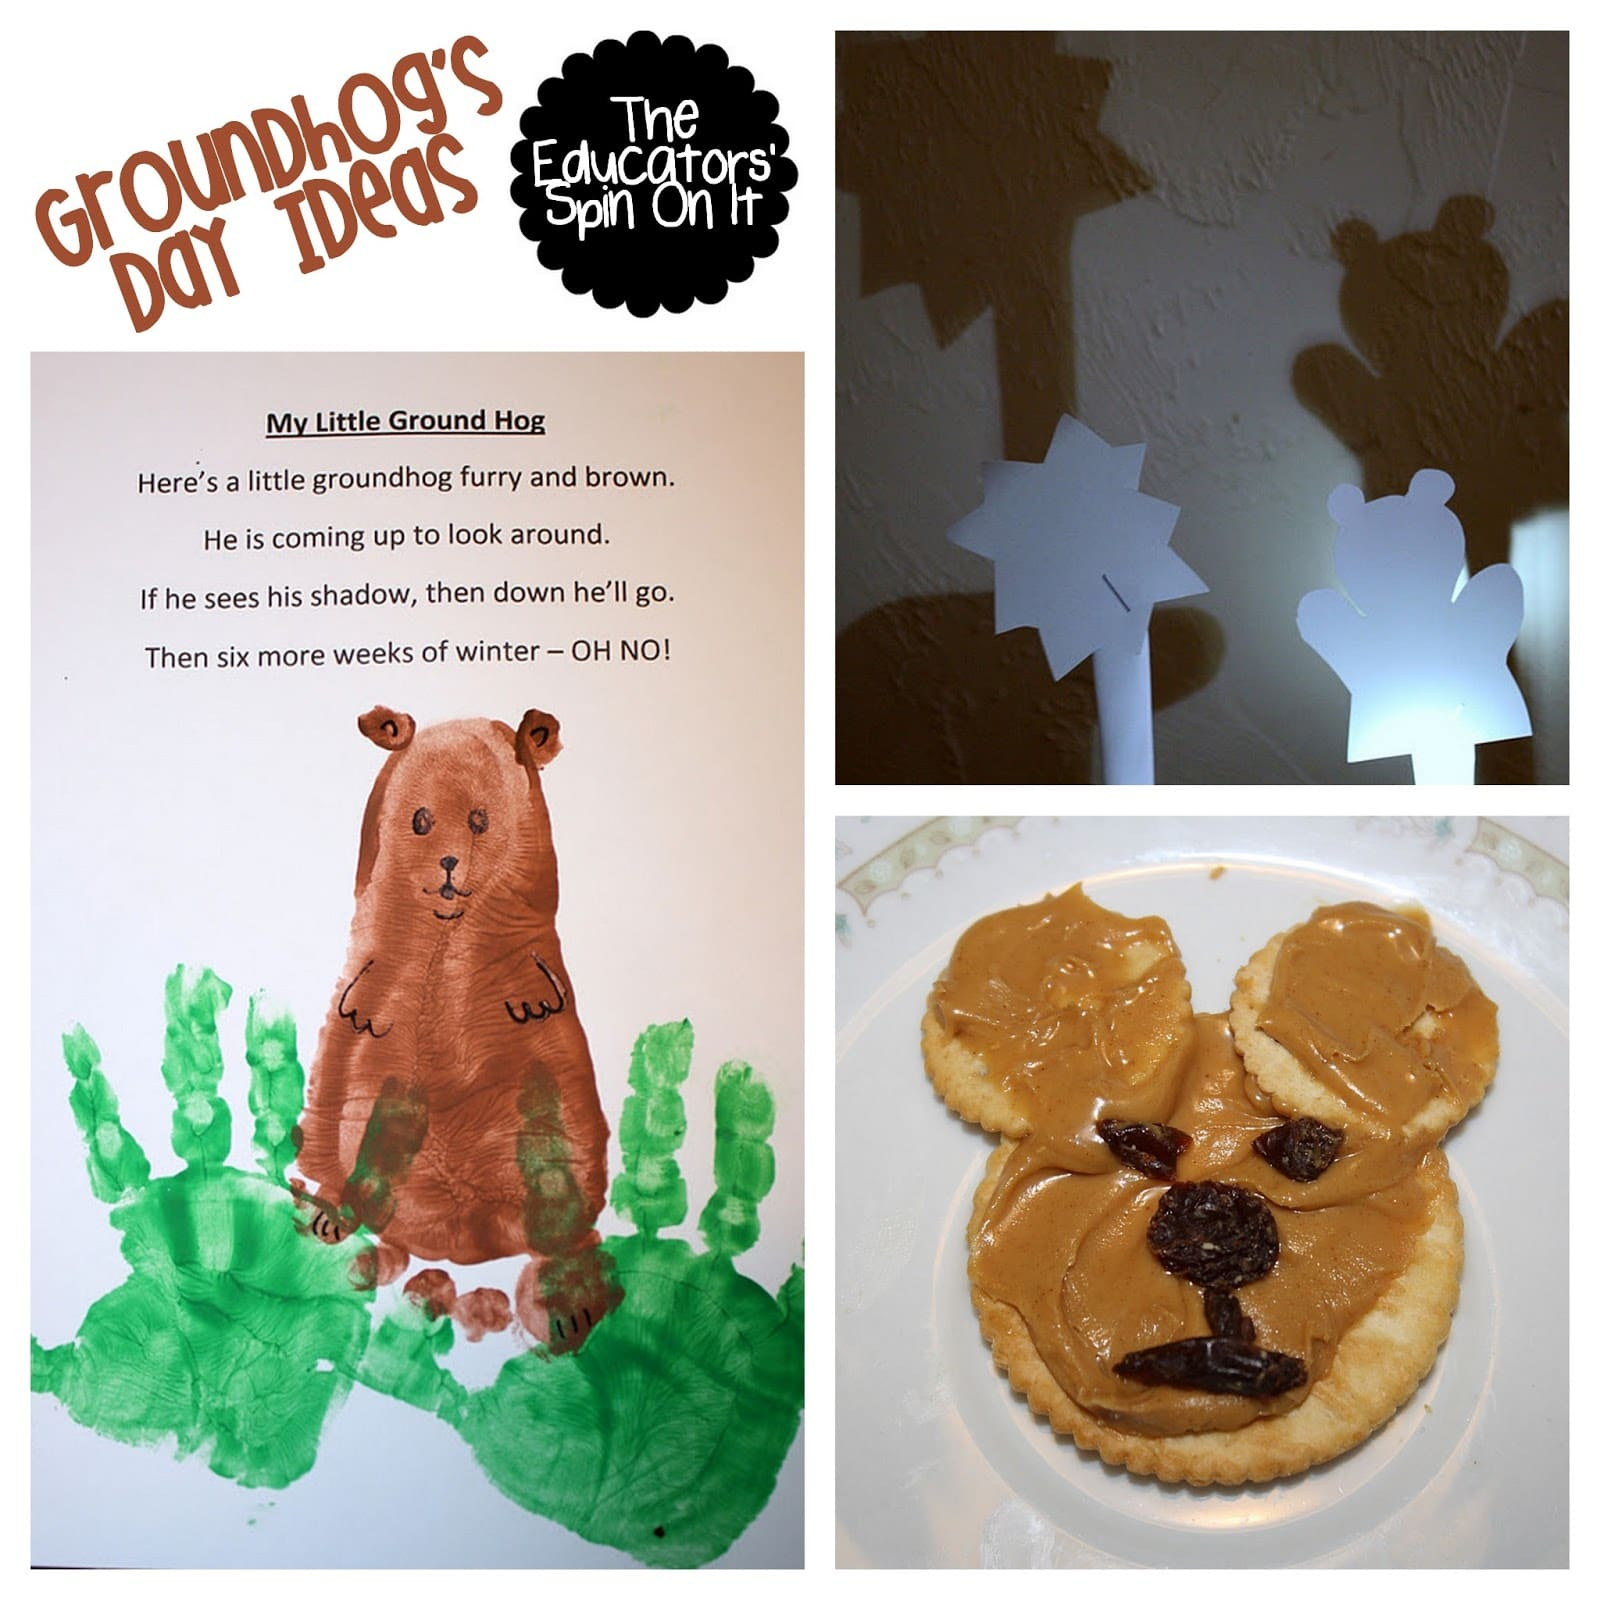 groundhog day craft ideas groundhog day ideas for the educators spin on it 4586